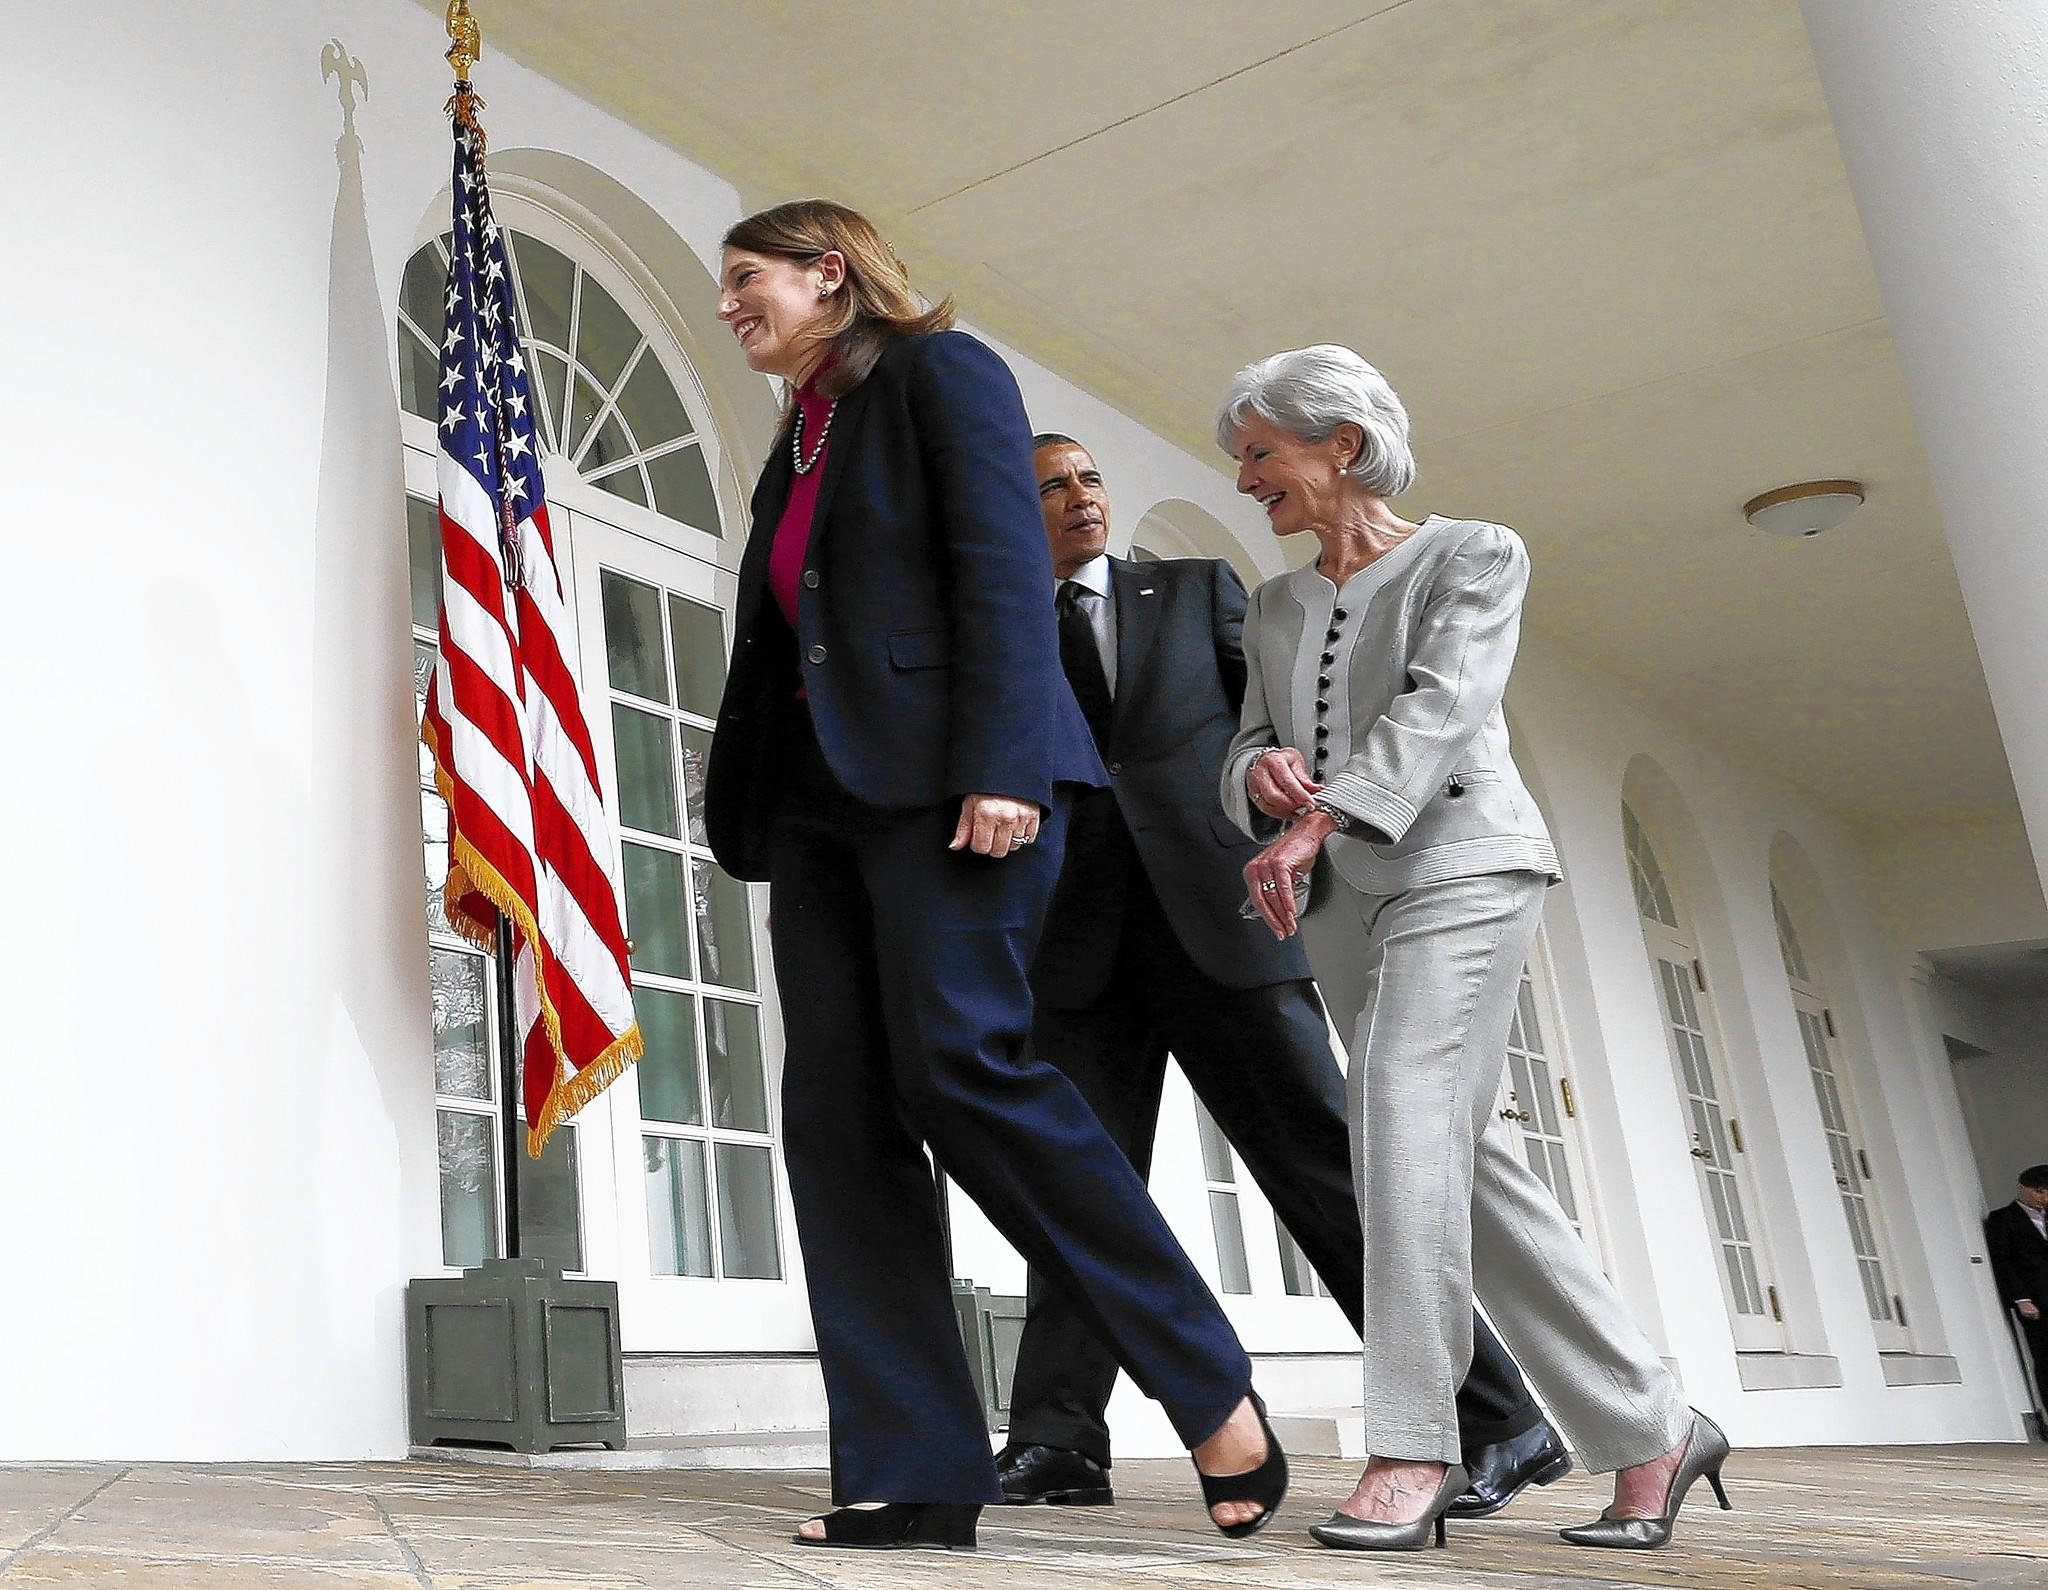 President Obama leaves the White House Rose Garden with outgoing Health and Human Services Secretary Kathleen Sebelius, right, and his nominee to replace her, budget director Sylvia Mathews Burwell.